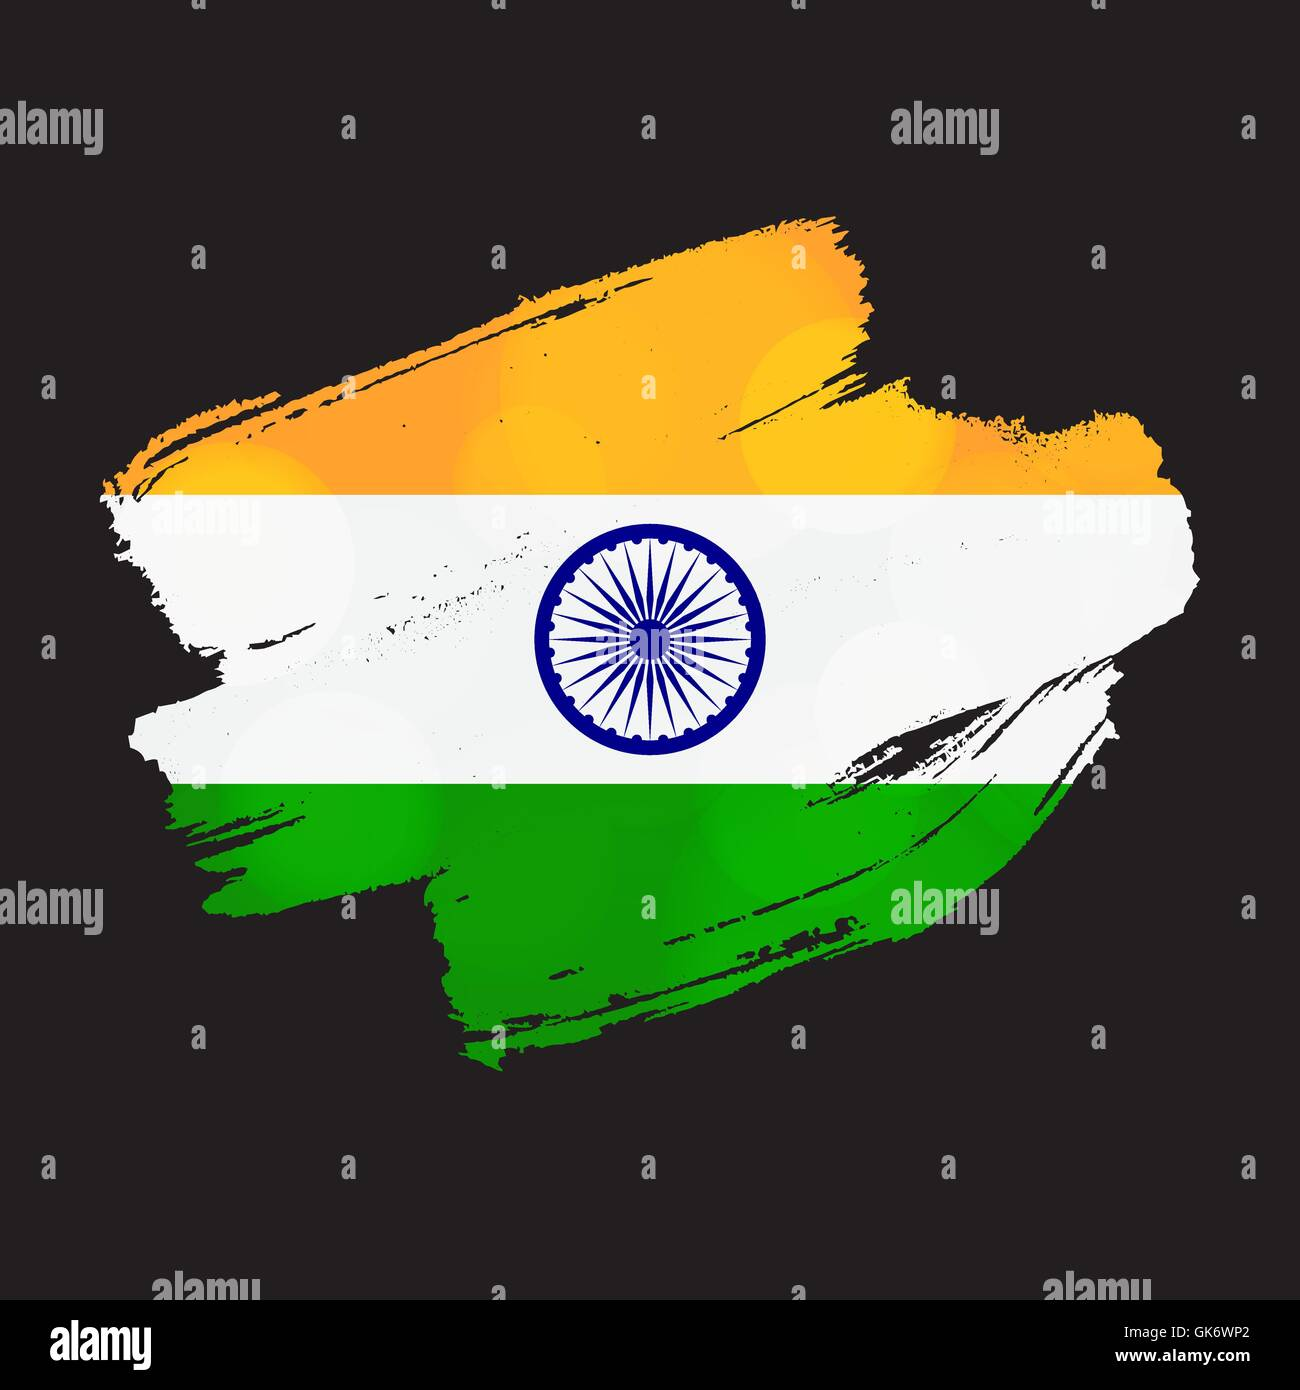 Happy Independence Day India Greeting Template With Ashoka Wheel